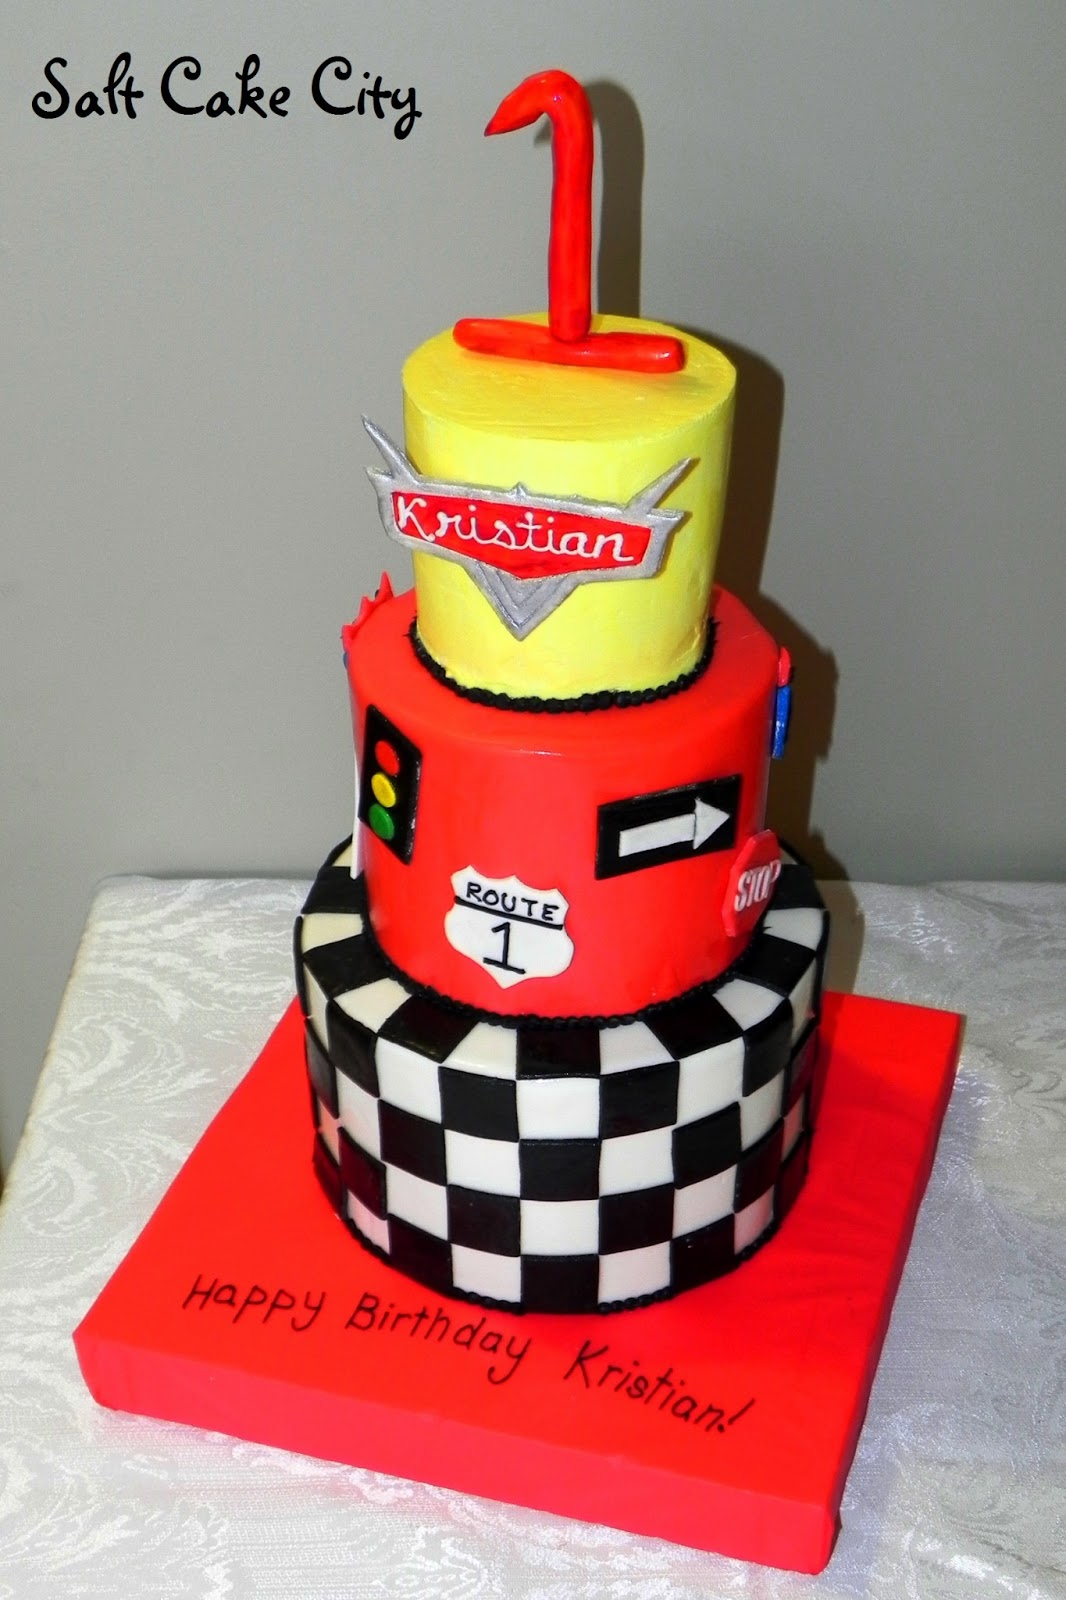 Jana Wanted A Fun Birthday Cake For Kristians 1st She Was Doing Cars Themed Party From The Disney Movies And So We Came Up With This Design